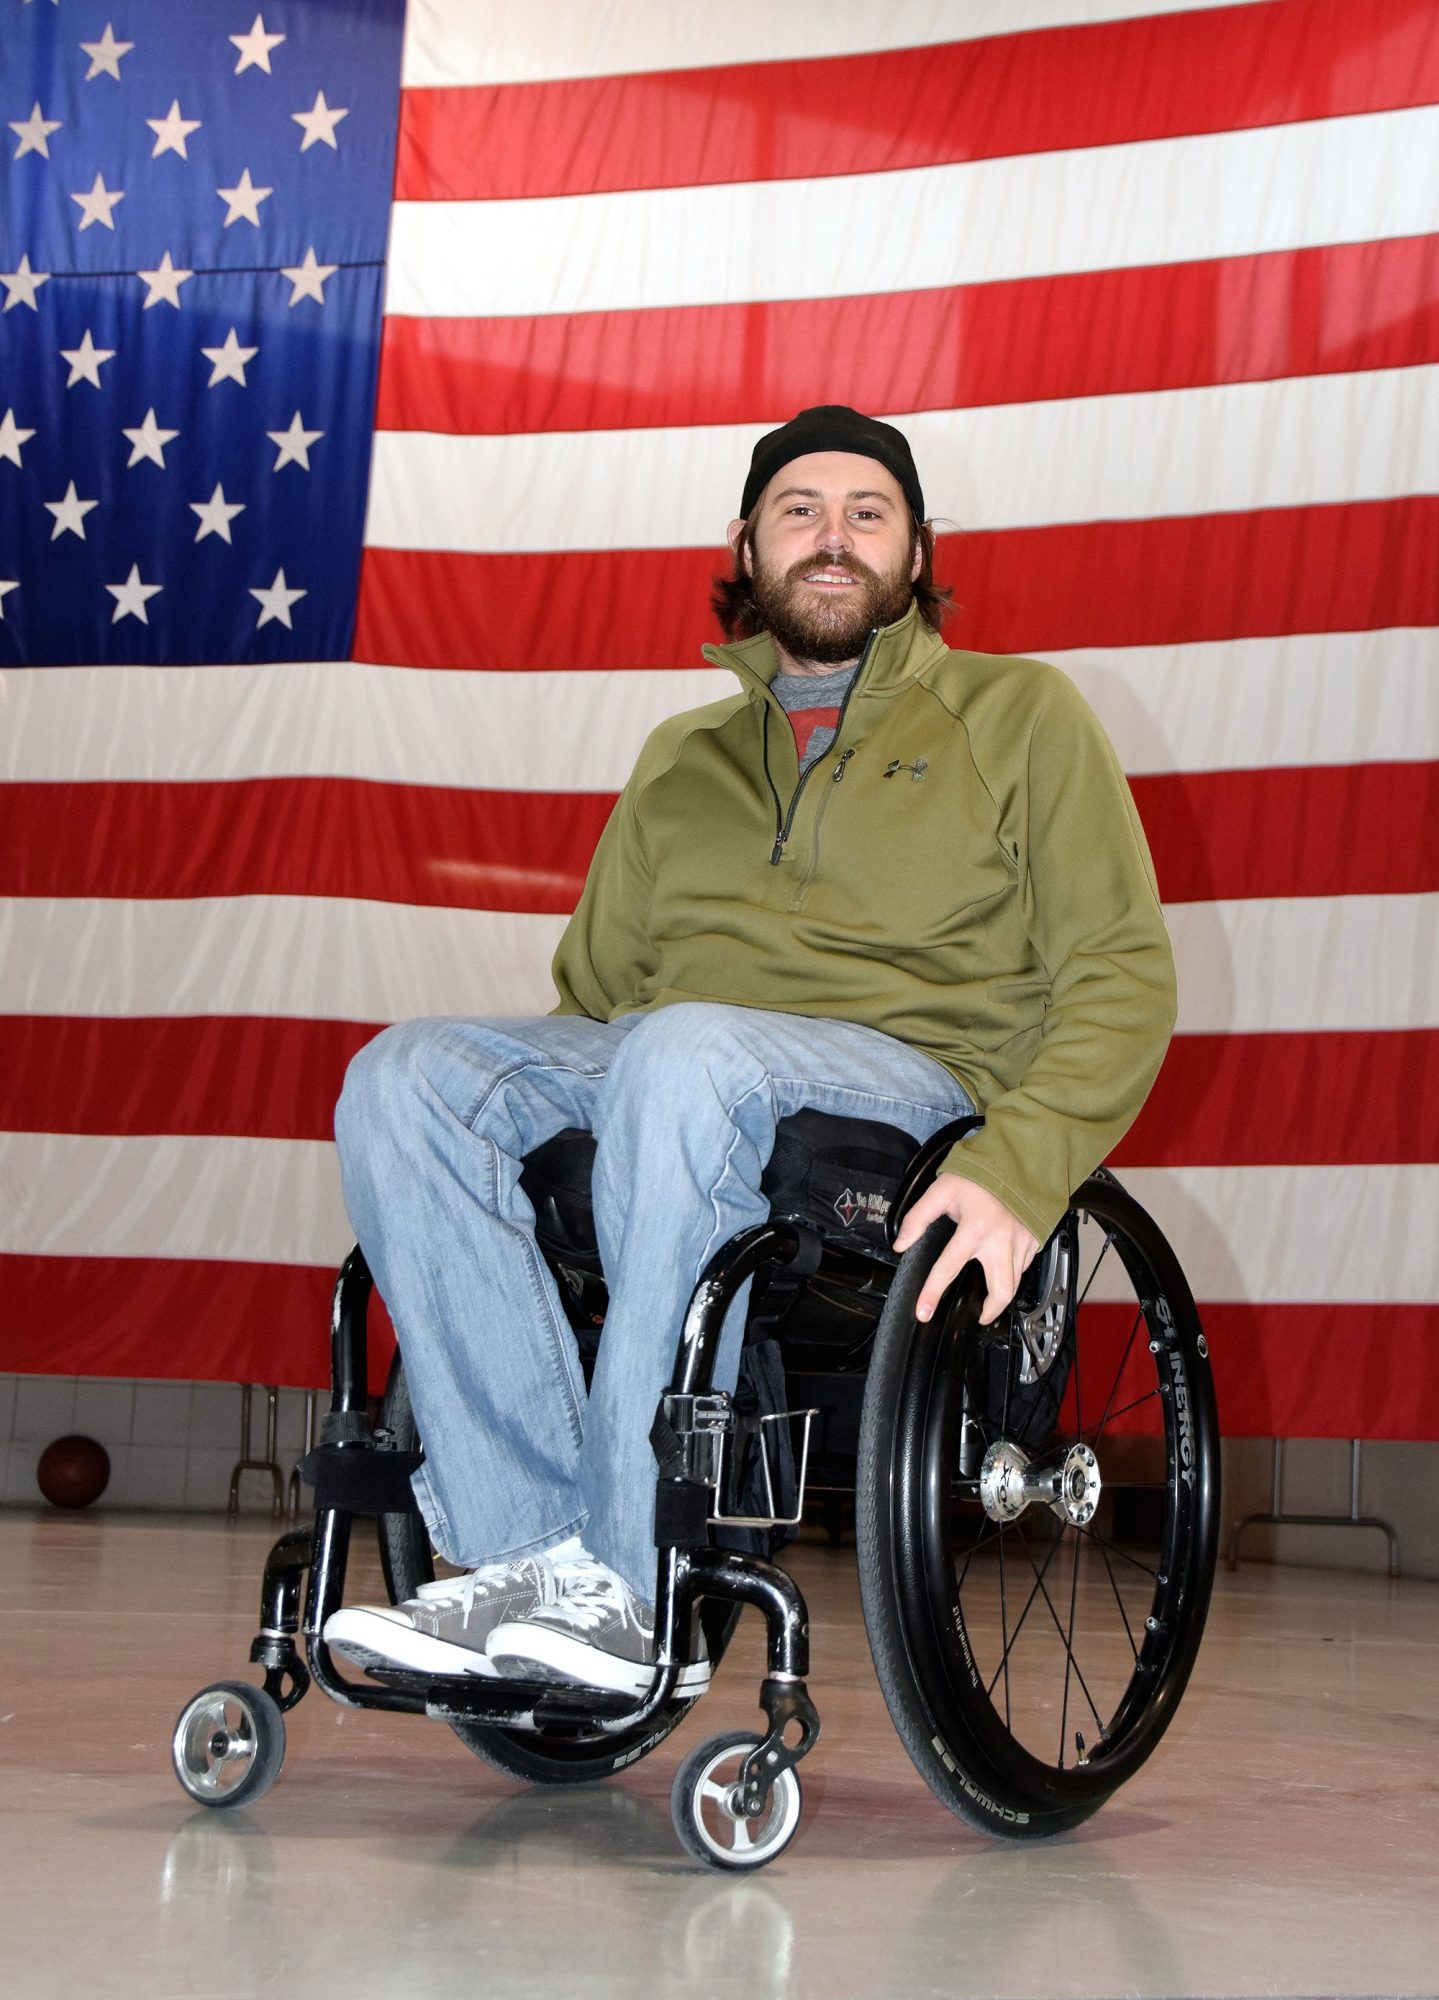 Christopher Meek Helps Paralyzed Veterans Stand, One Robotic Skeleton at a Time